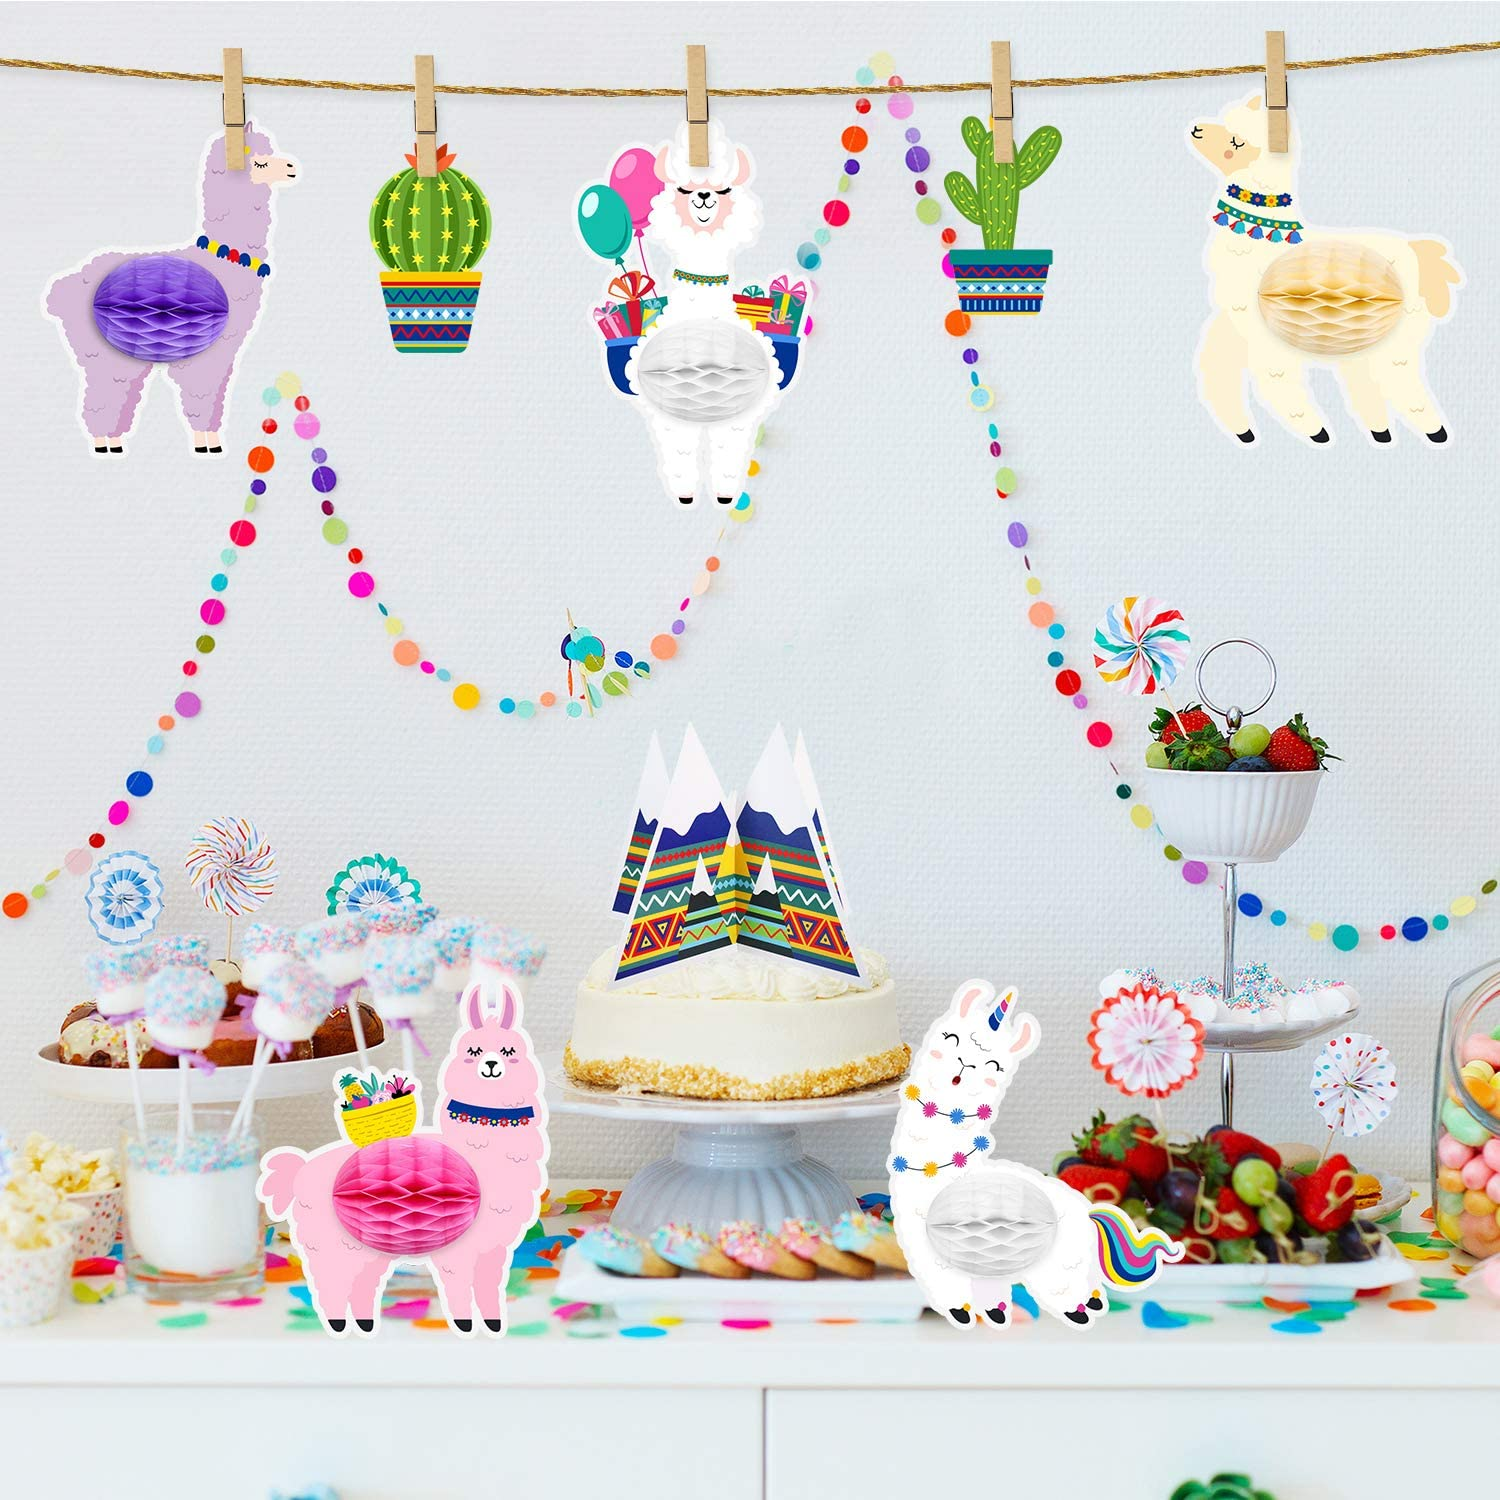 8 Pieces Llama Cactus Centerpiece Honeycomb Table Decorations Llama Cactus Honeycomb Party Supplies for Themed Birthday Party Baby Shower